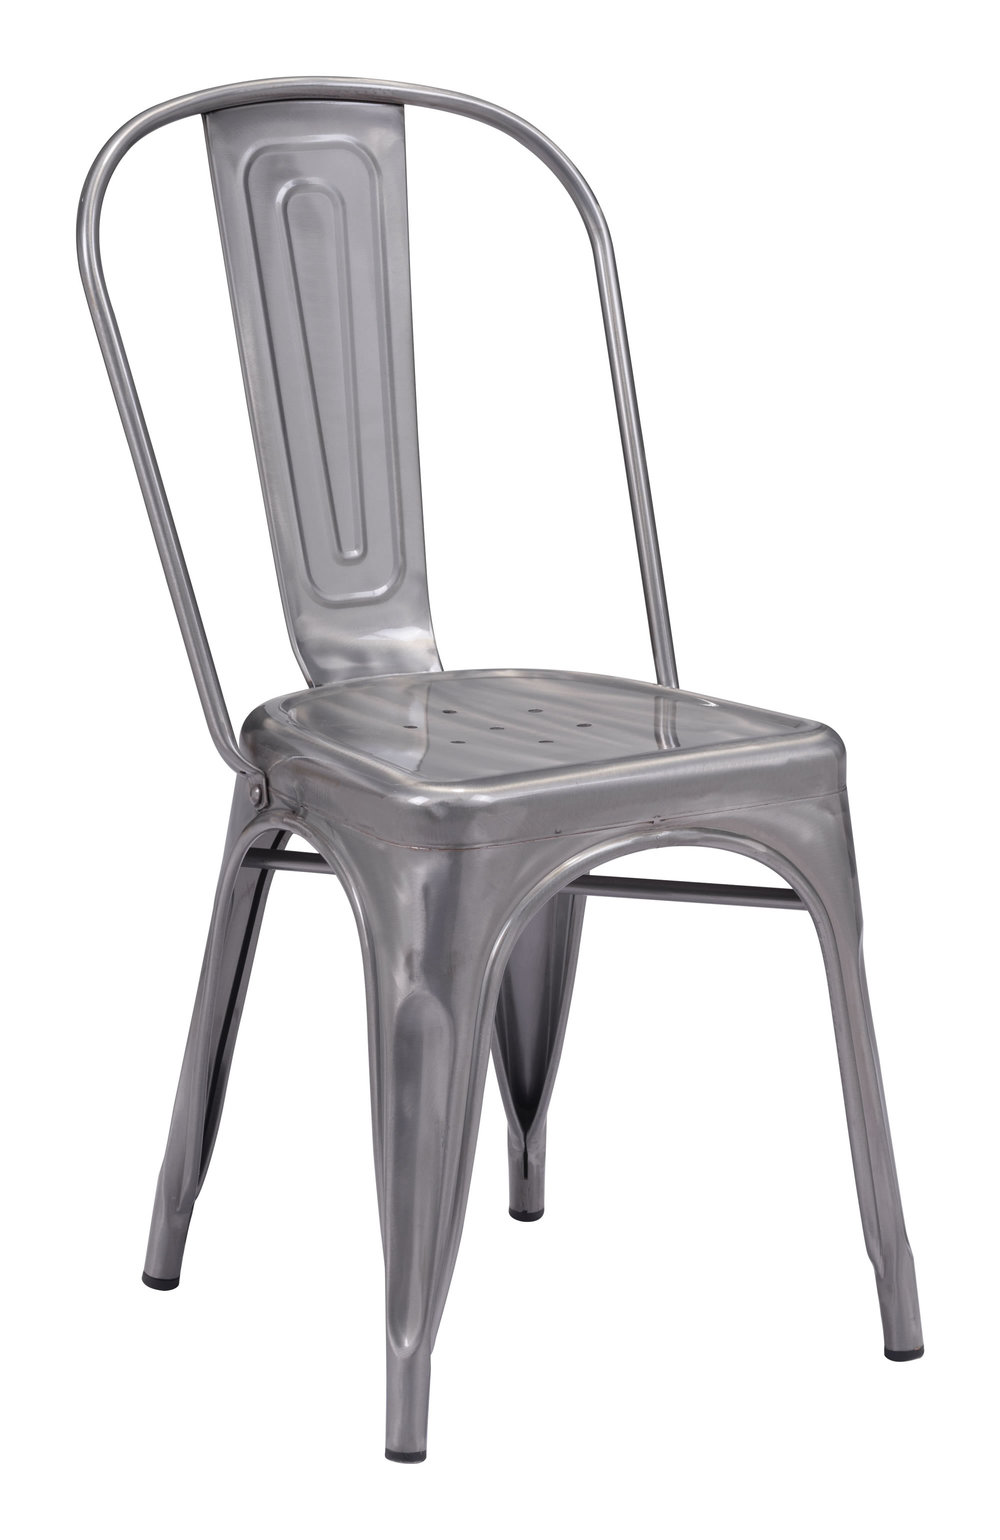 Zuo Modern Contemporary - Elio Dining Chair - Set of 2 - Gunmetal